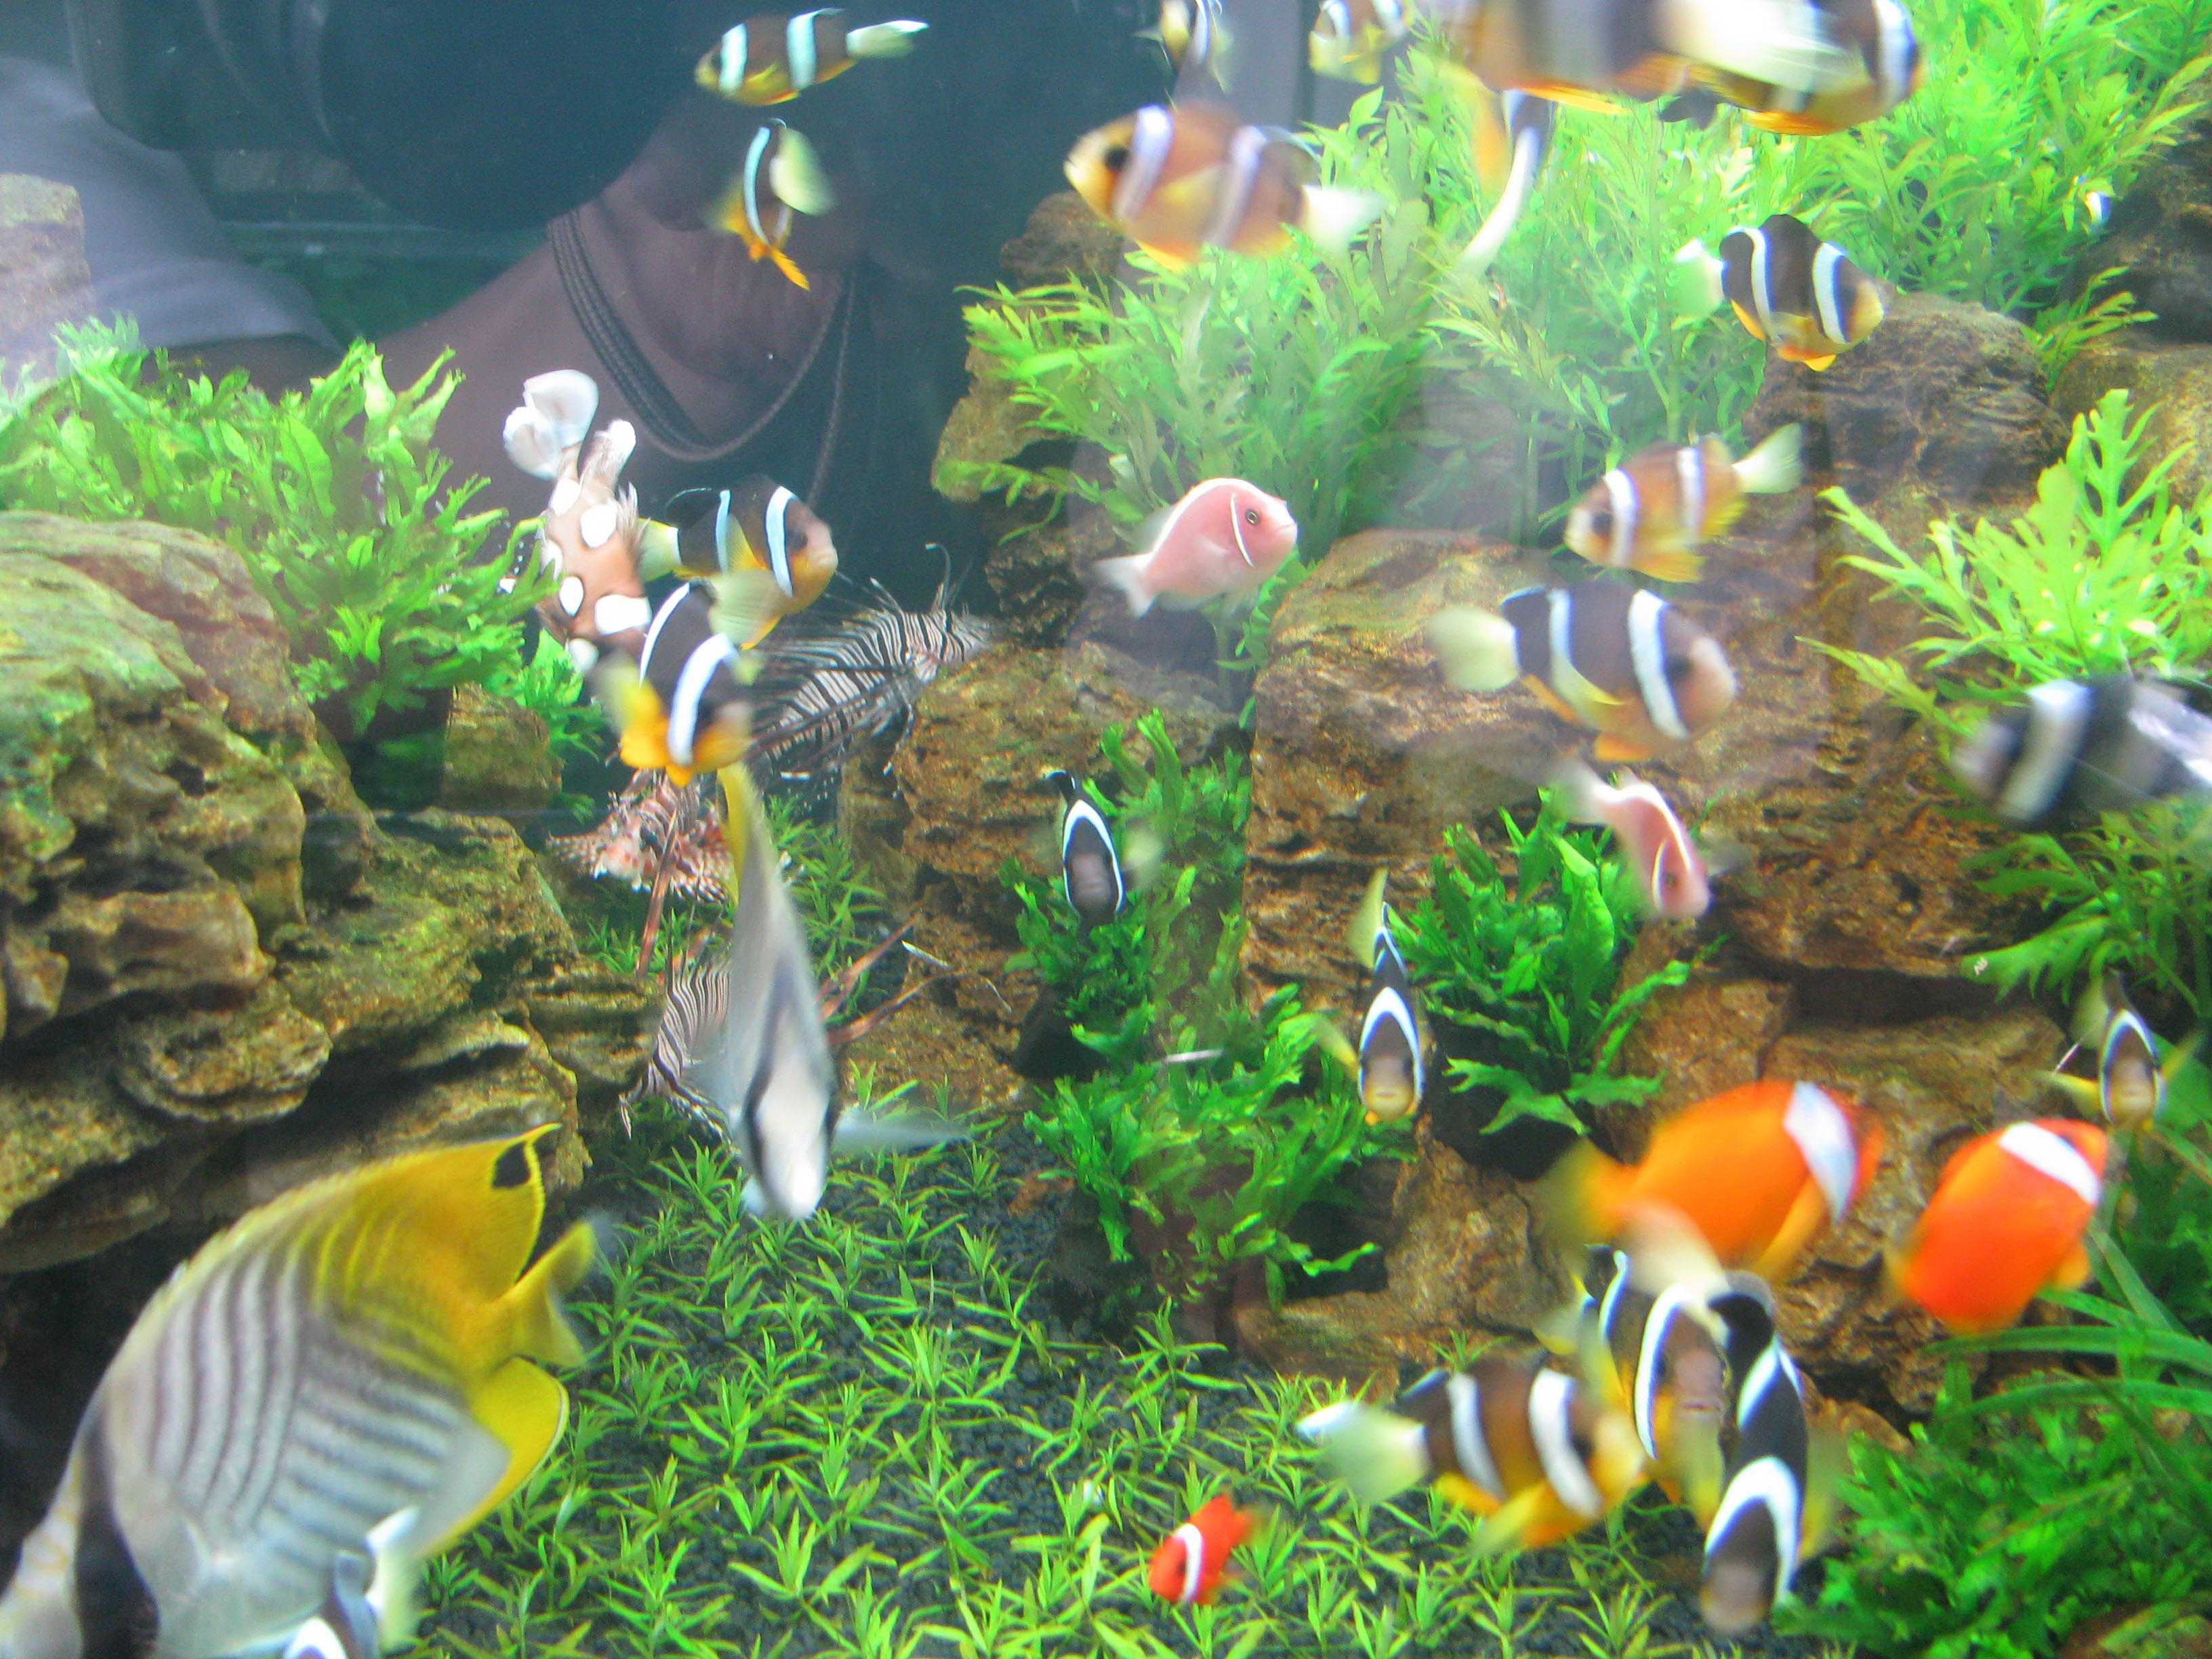 Hcmc exports 5 million ornamental fish investing funds for Ornamental fish